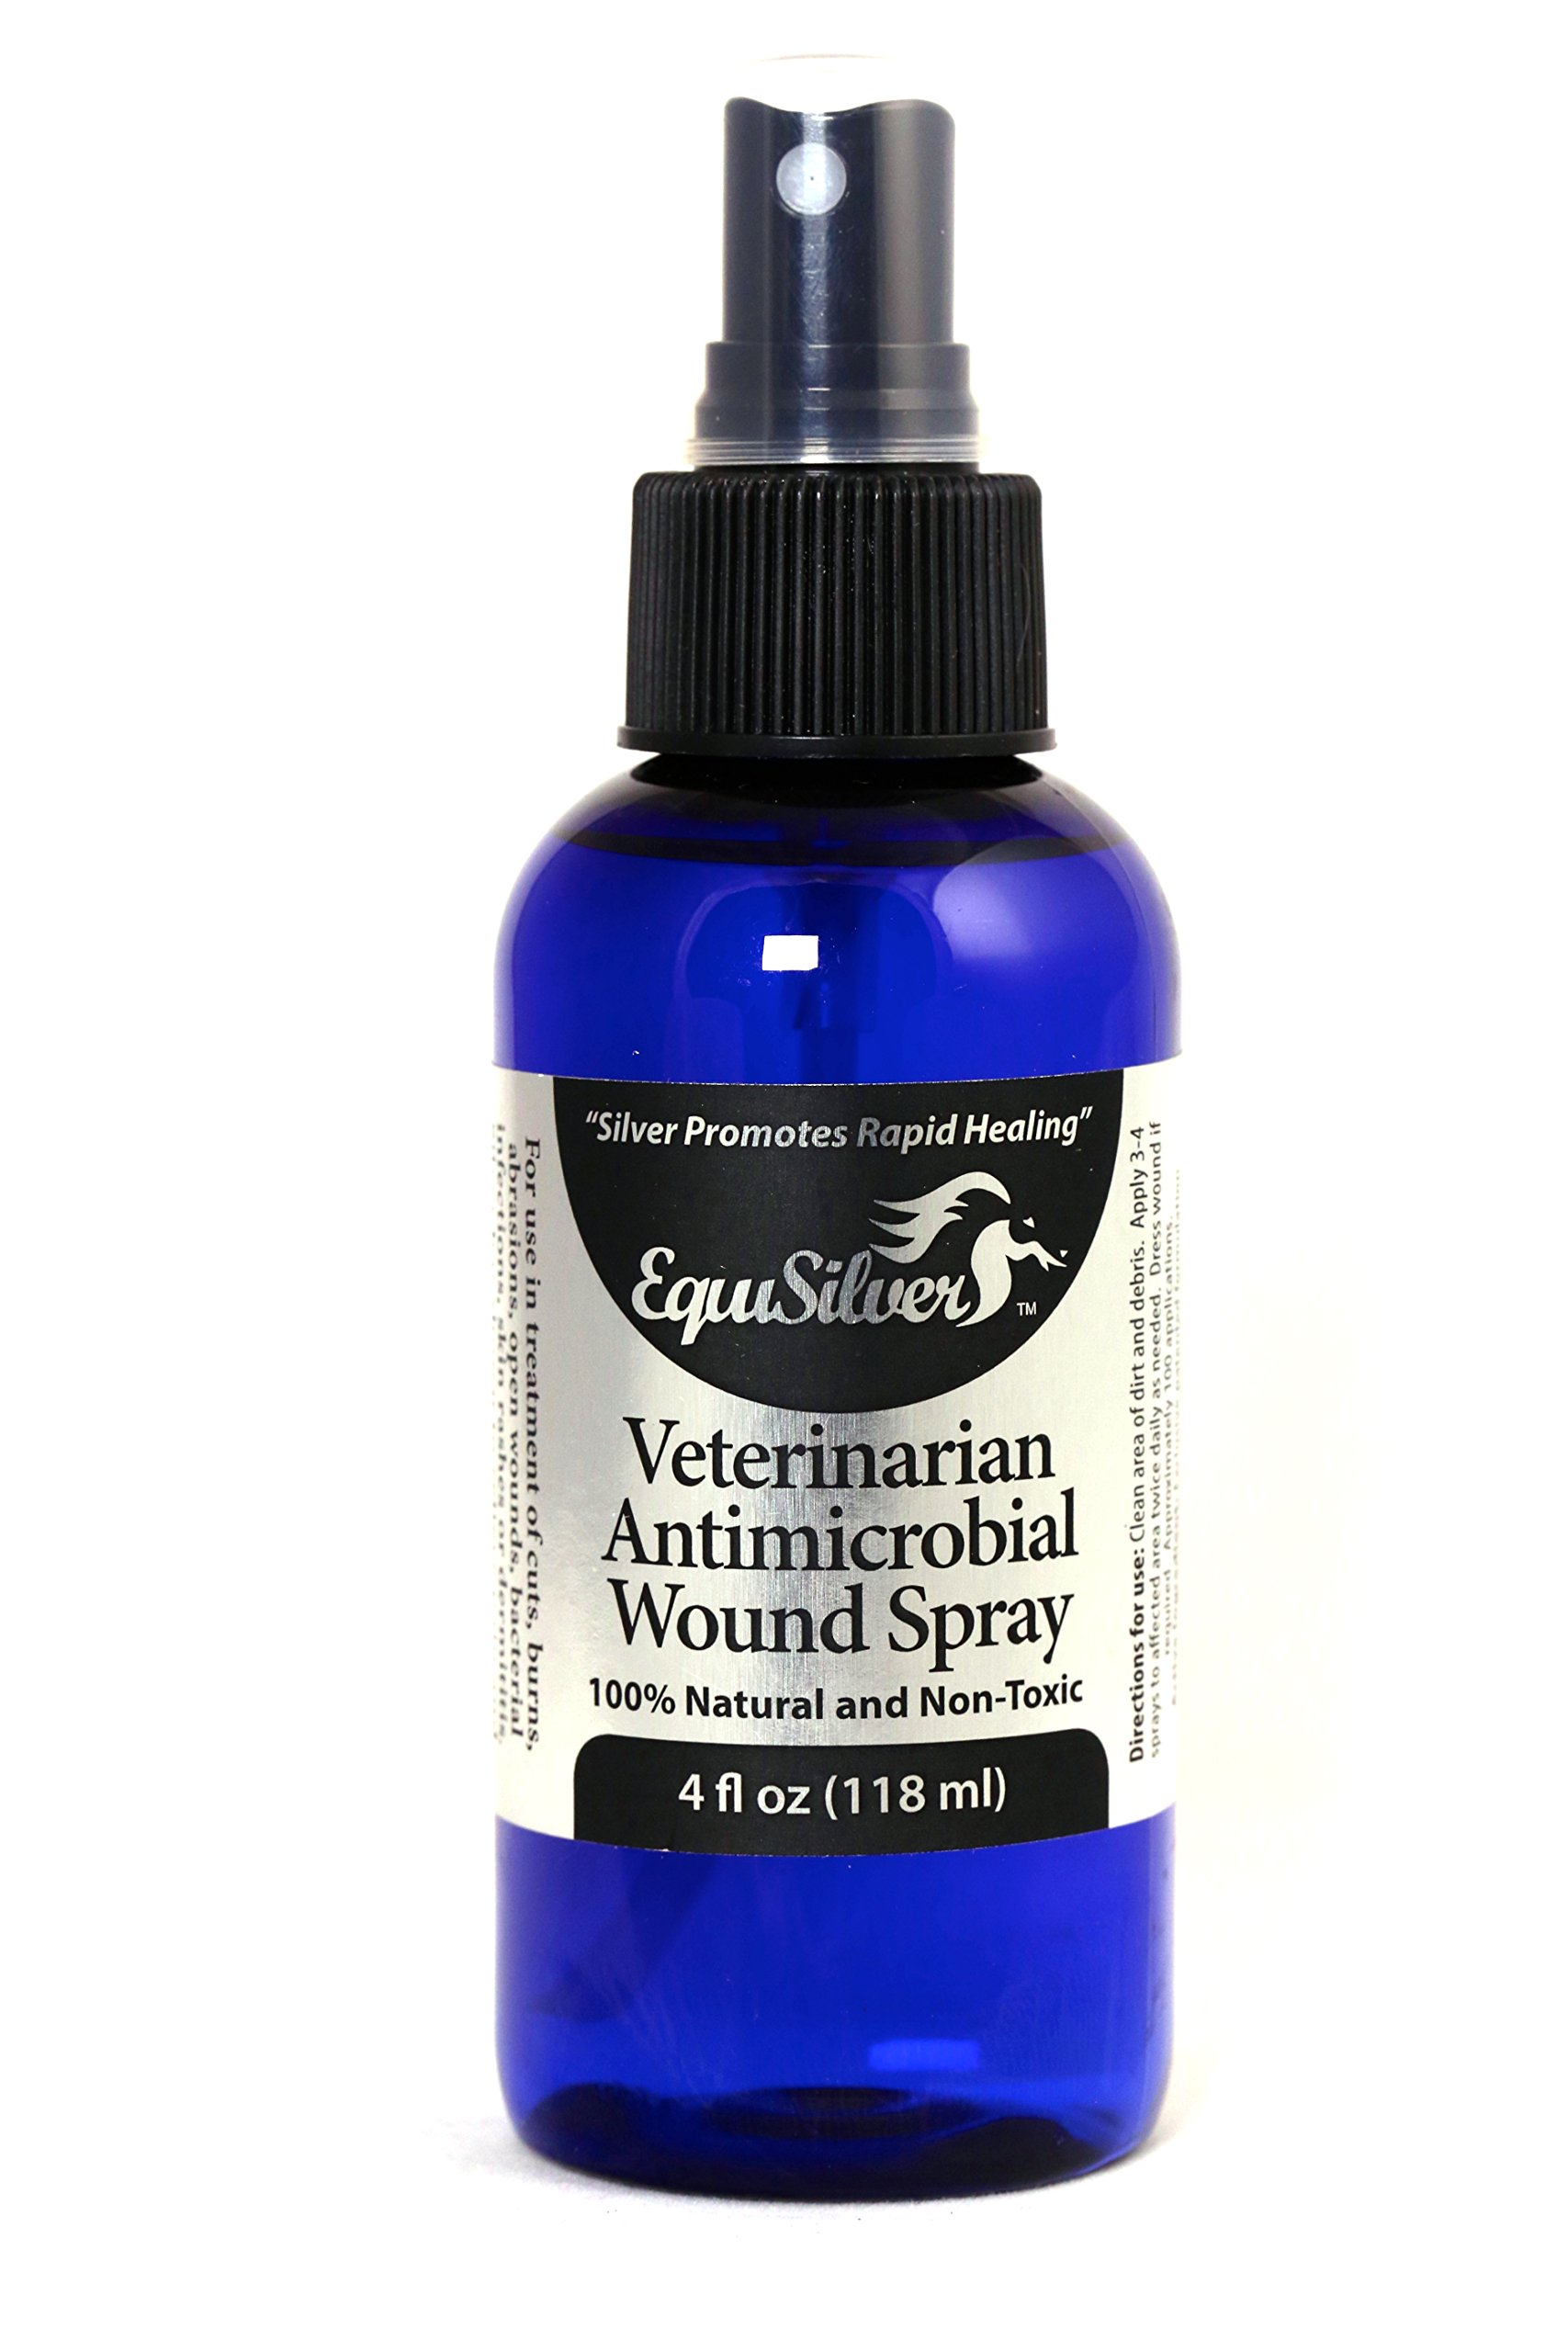 Equisilver Natural and Non-Toxic Vet Formulated Wound Spray for Dogs and Cats, 4 oz. by Equisilver